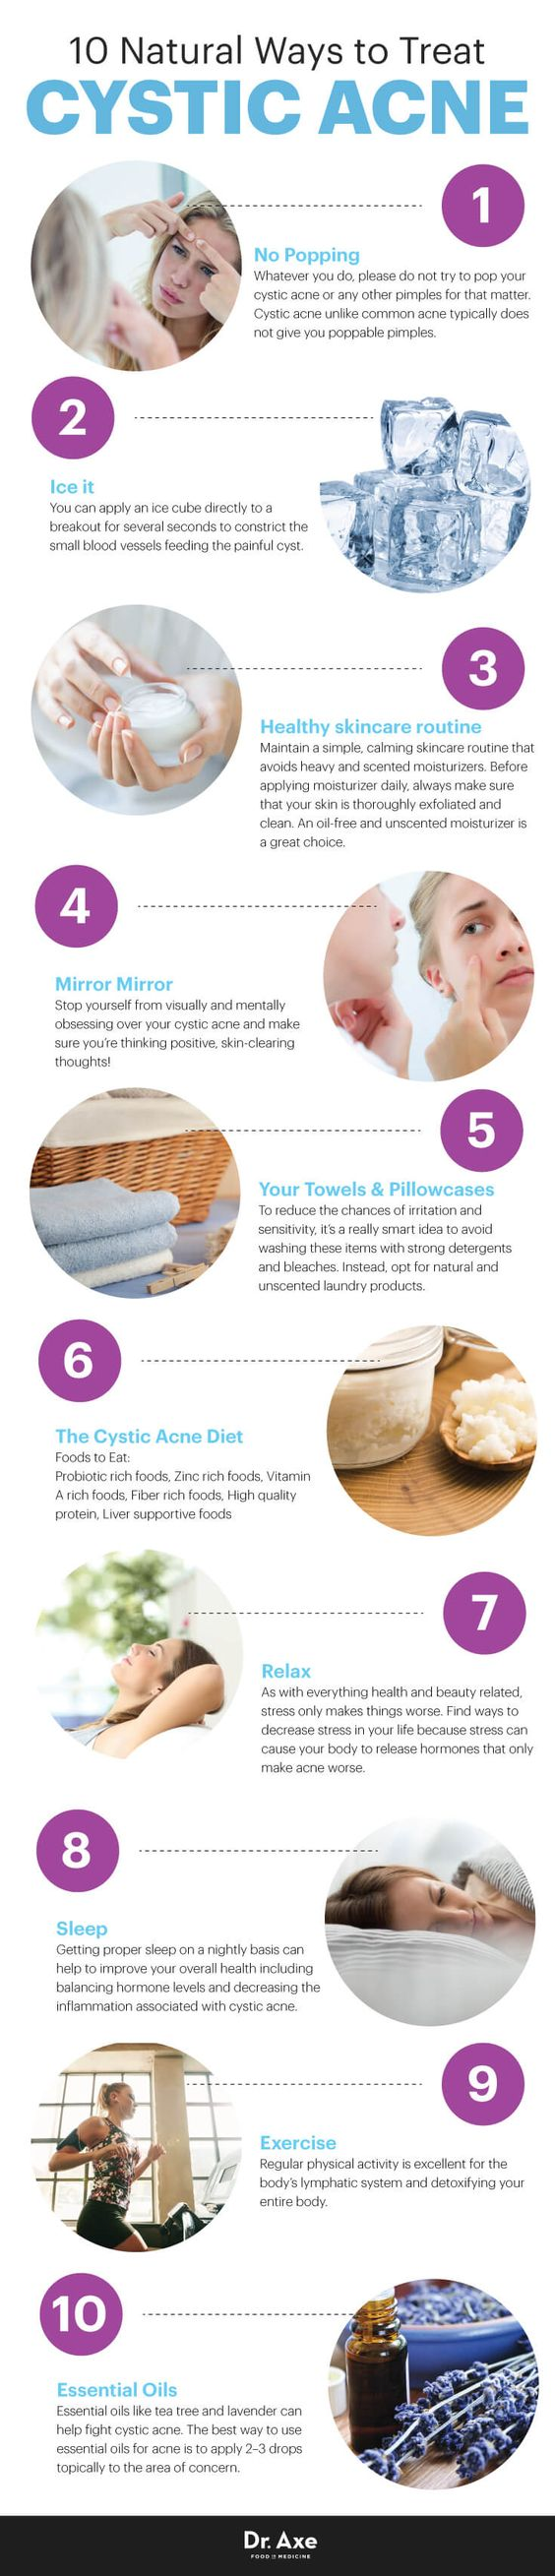 natural ways to treat cystic acne